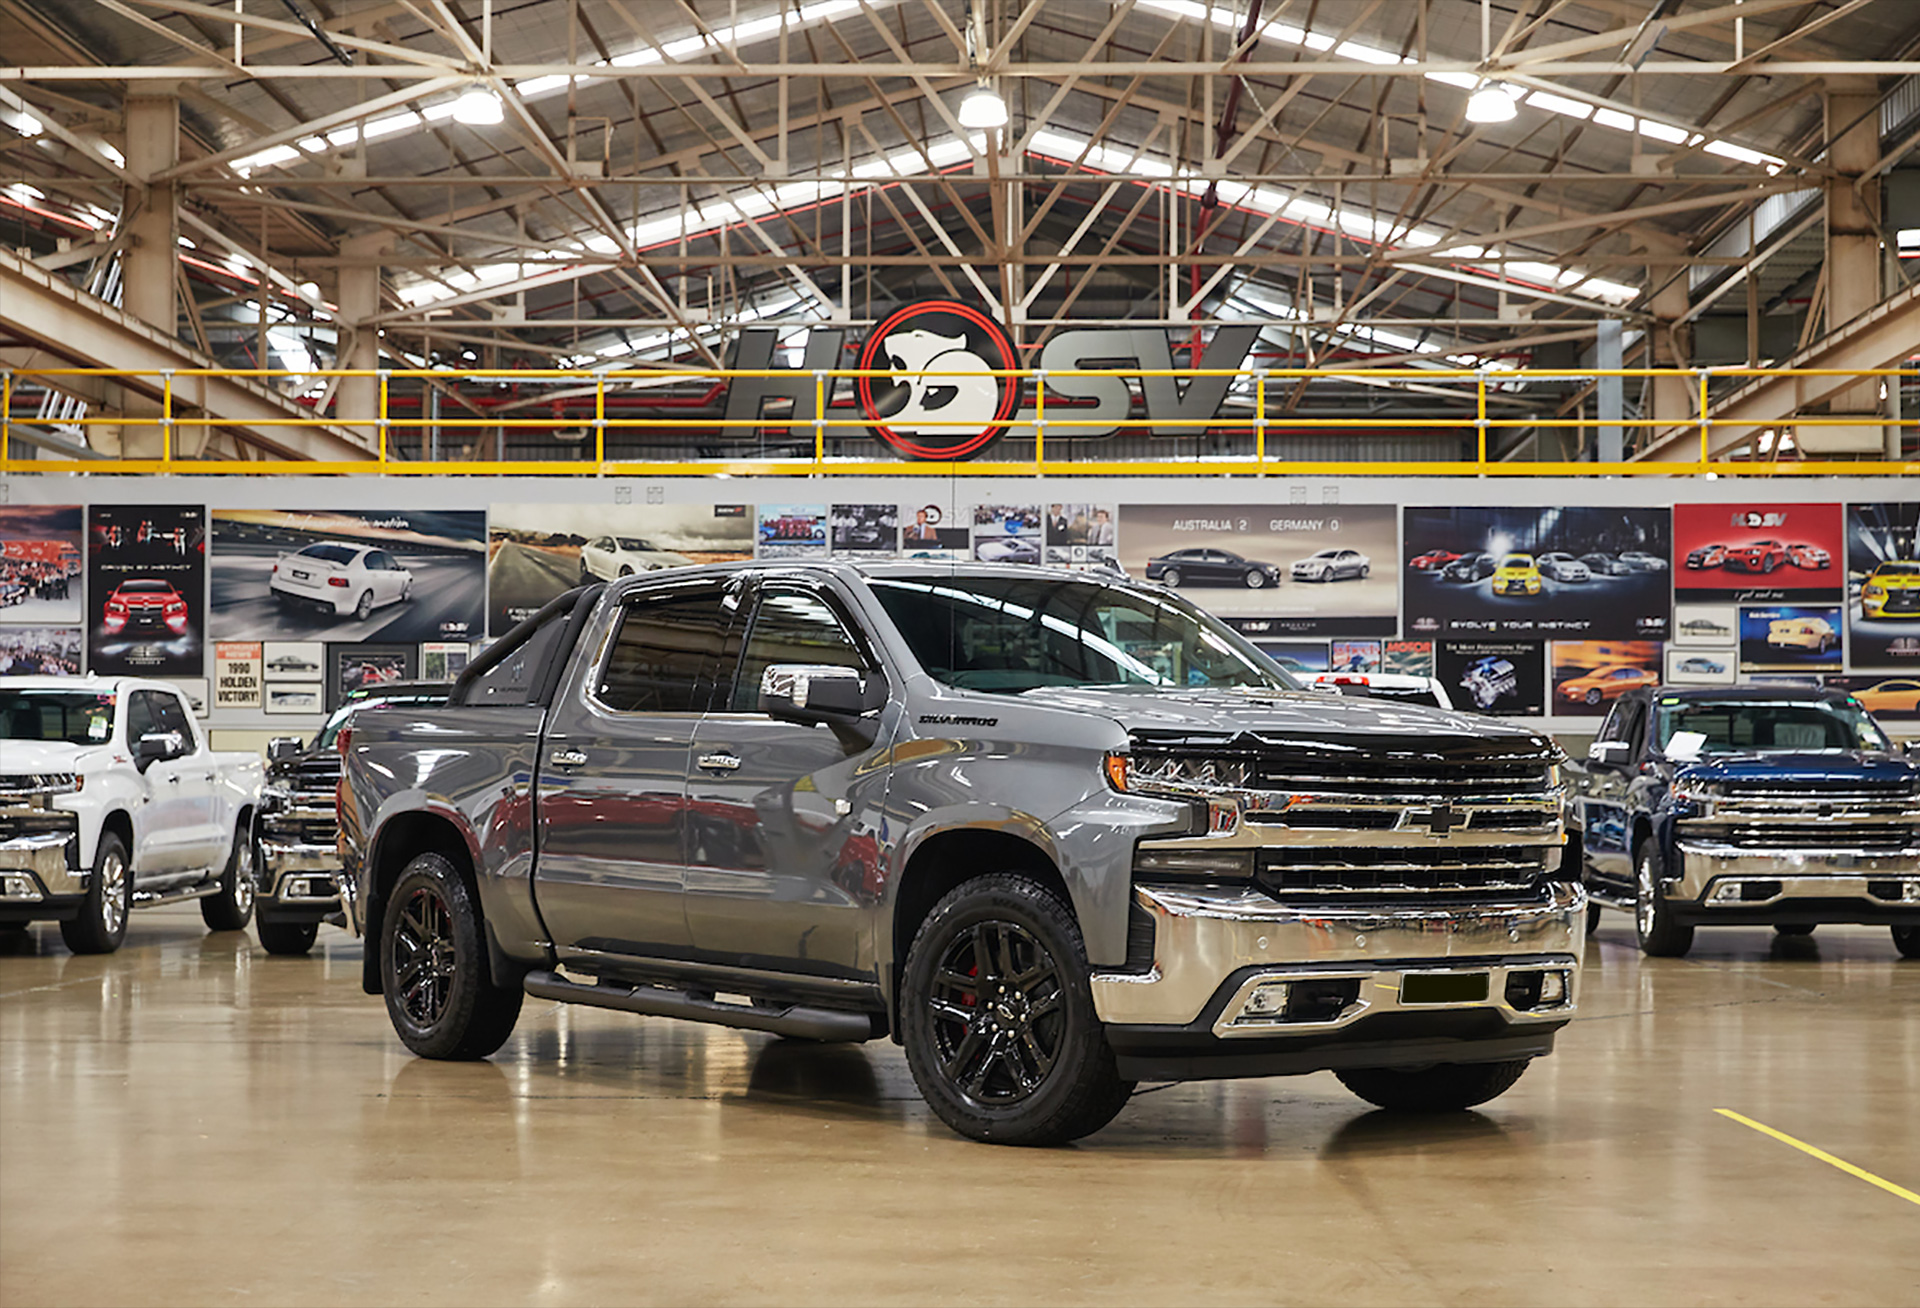 WAG will continue to re-manufacture the Chevrolet Silverado range at our Clayton, Victoria premises.